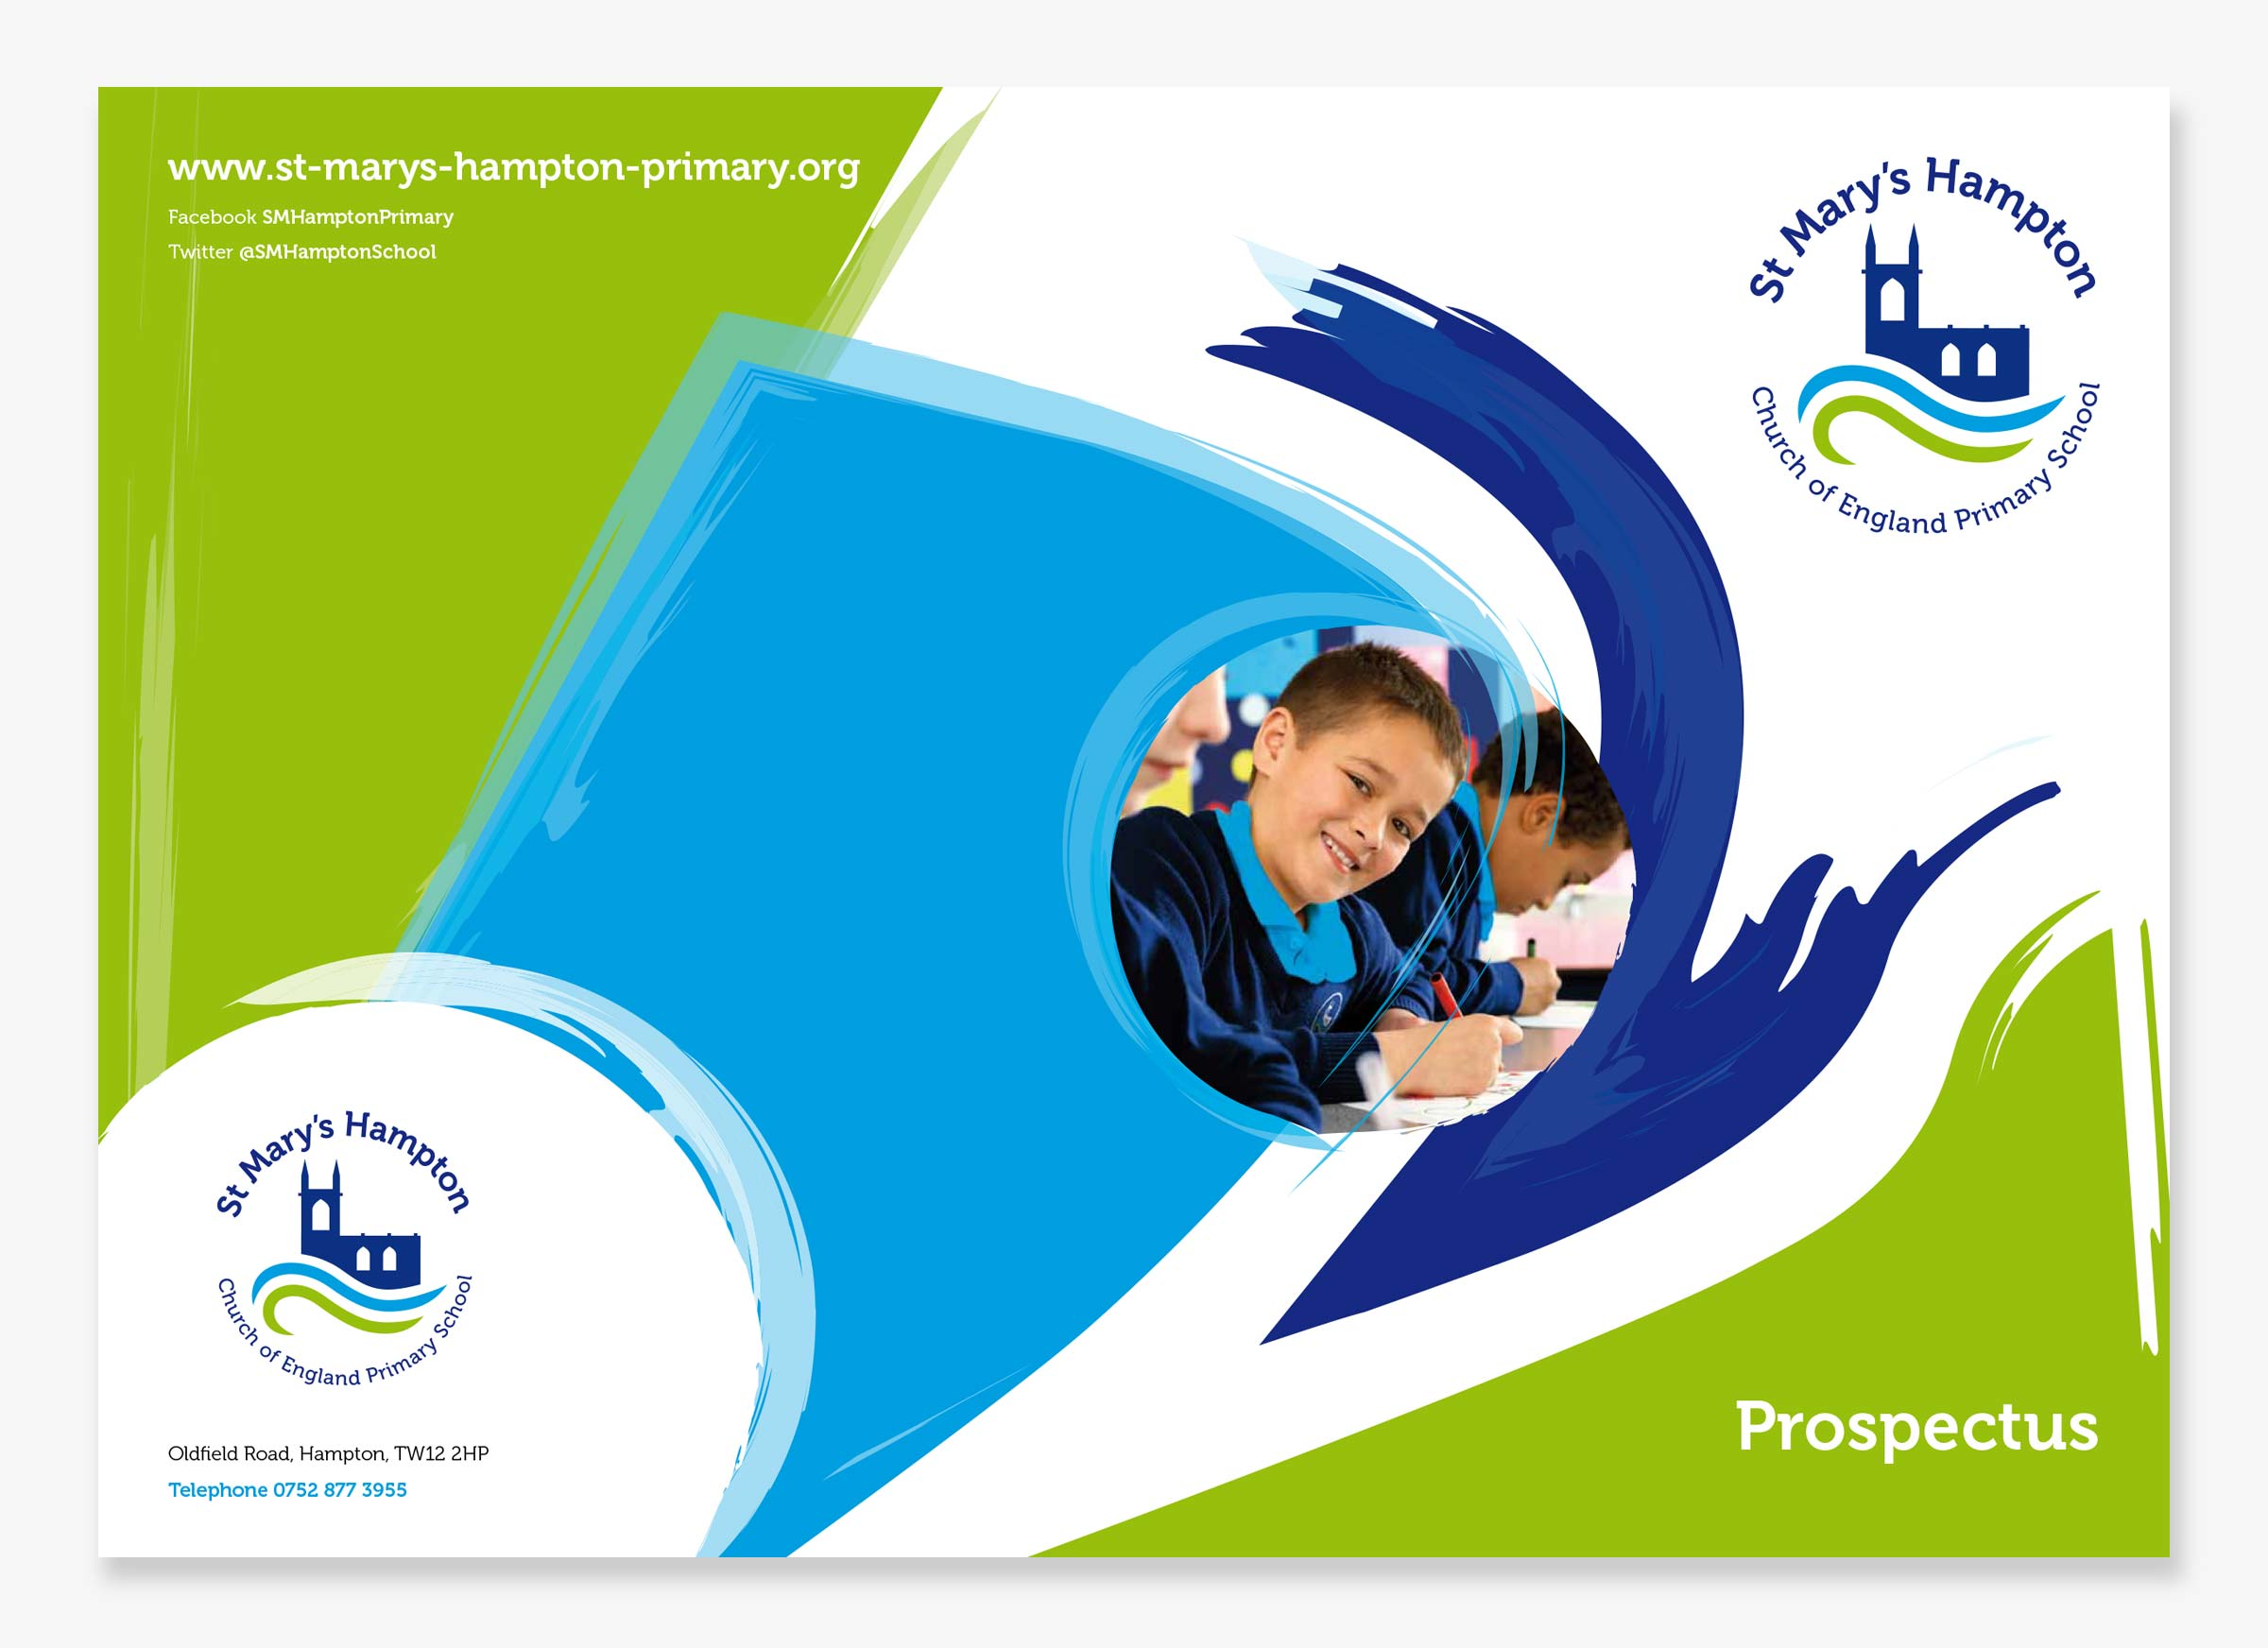 St Mary's primary school prospectus